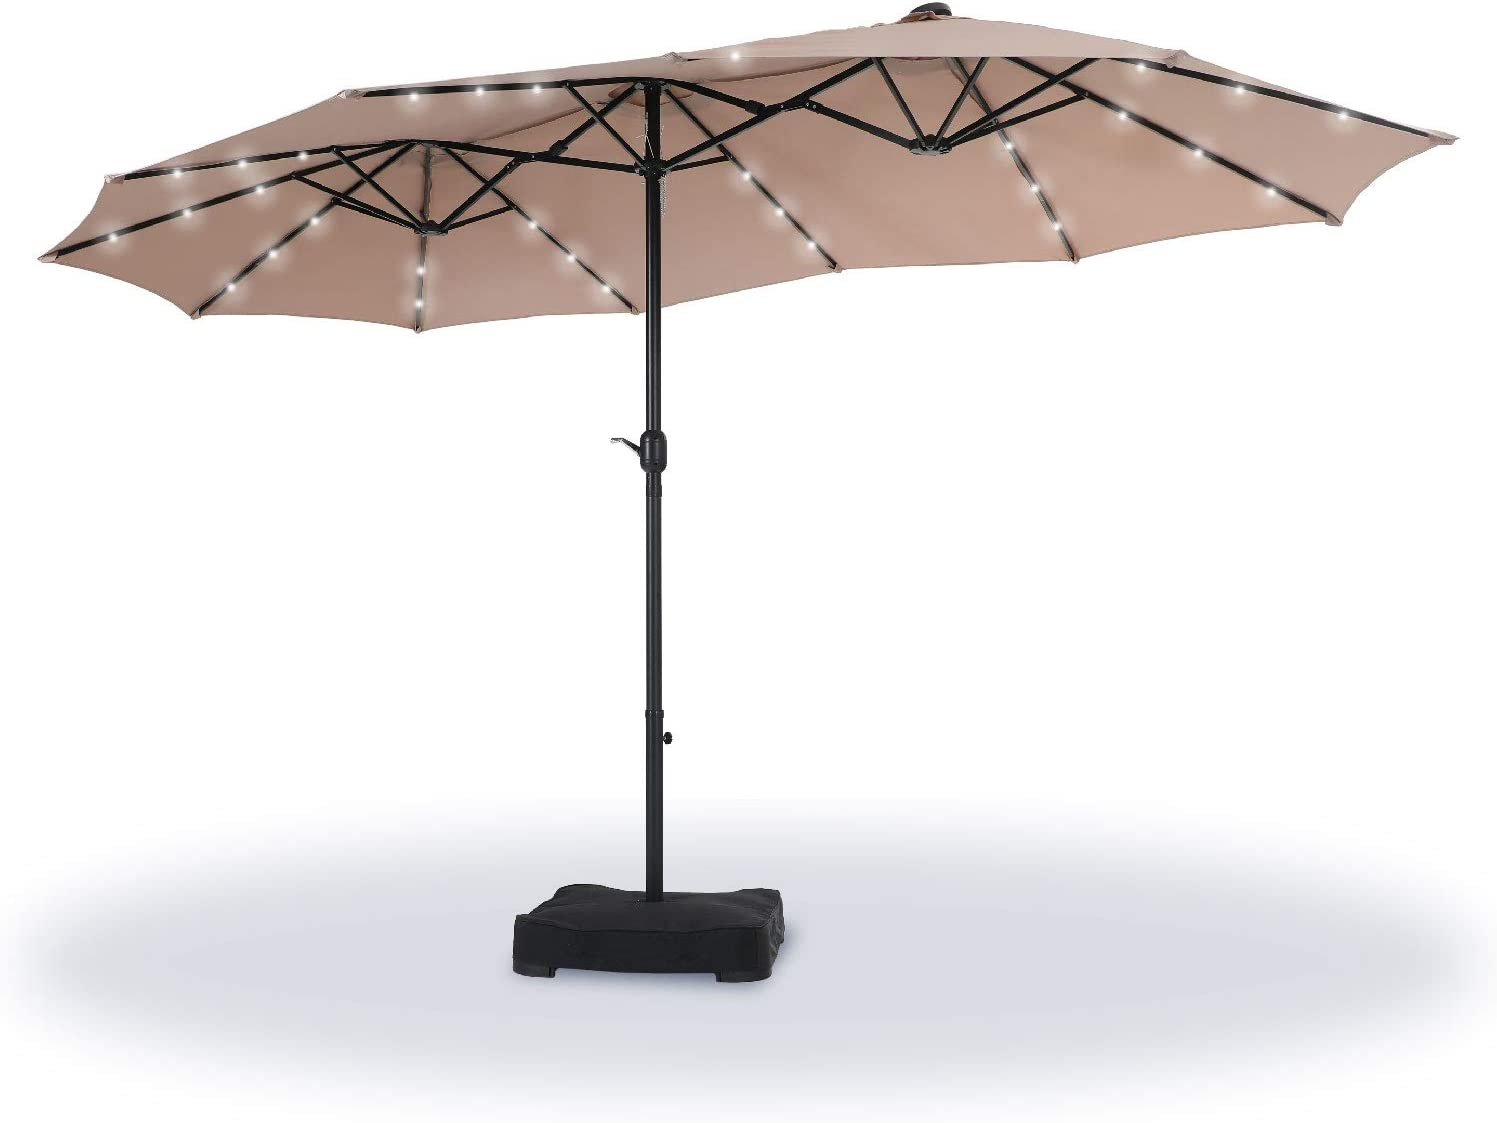 Sophia William 15ft Patio Umbrella Included Ranking TOP20 Base with Lights Max 47% OFF